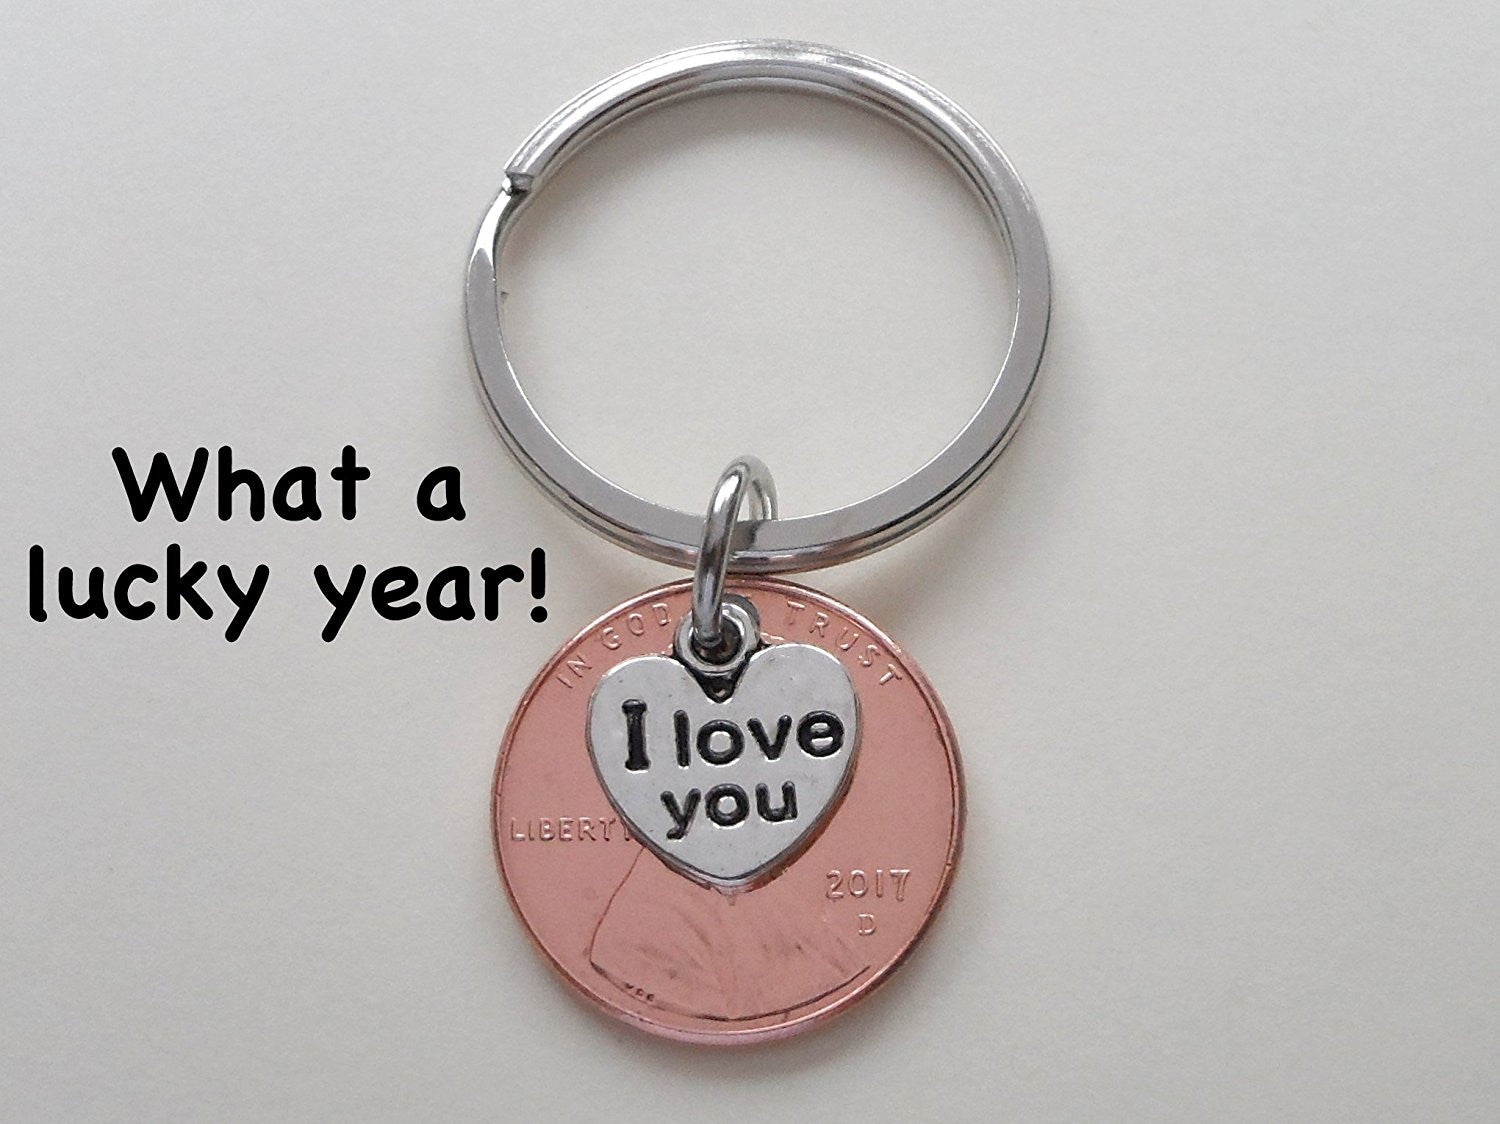 I Love You Heart Charm Layered Over 2017 Penny Keychain JewelryEveryday